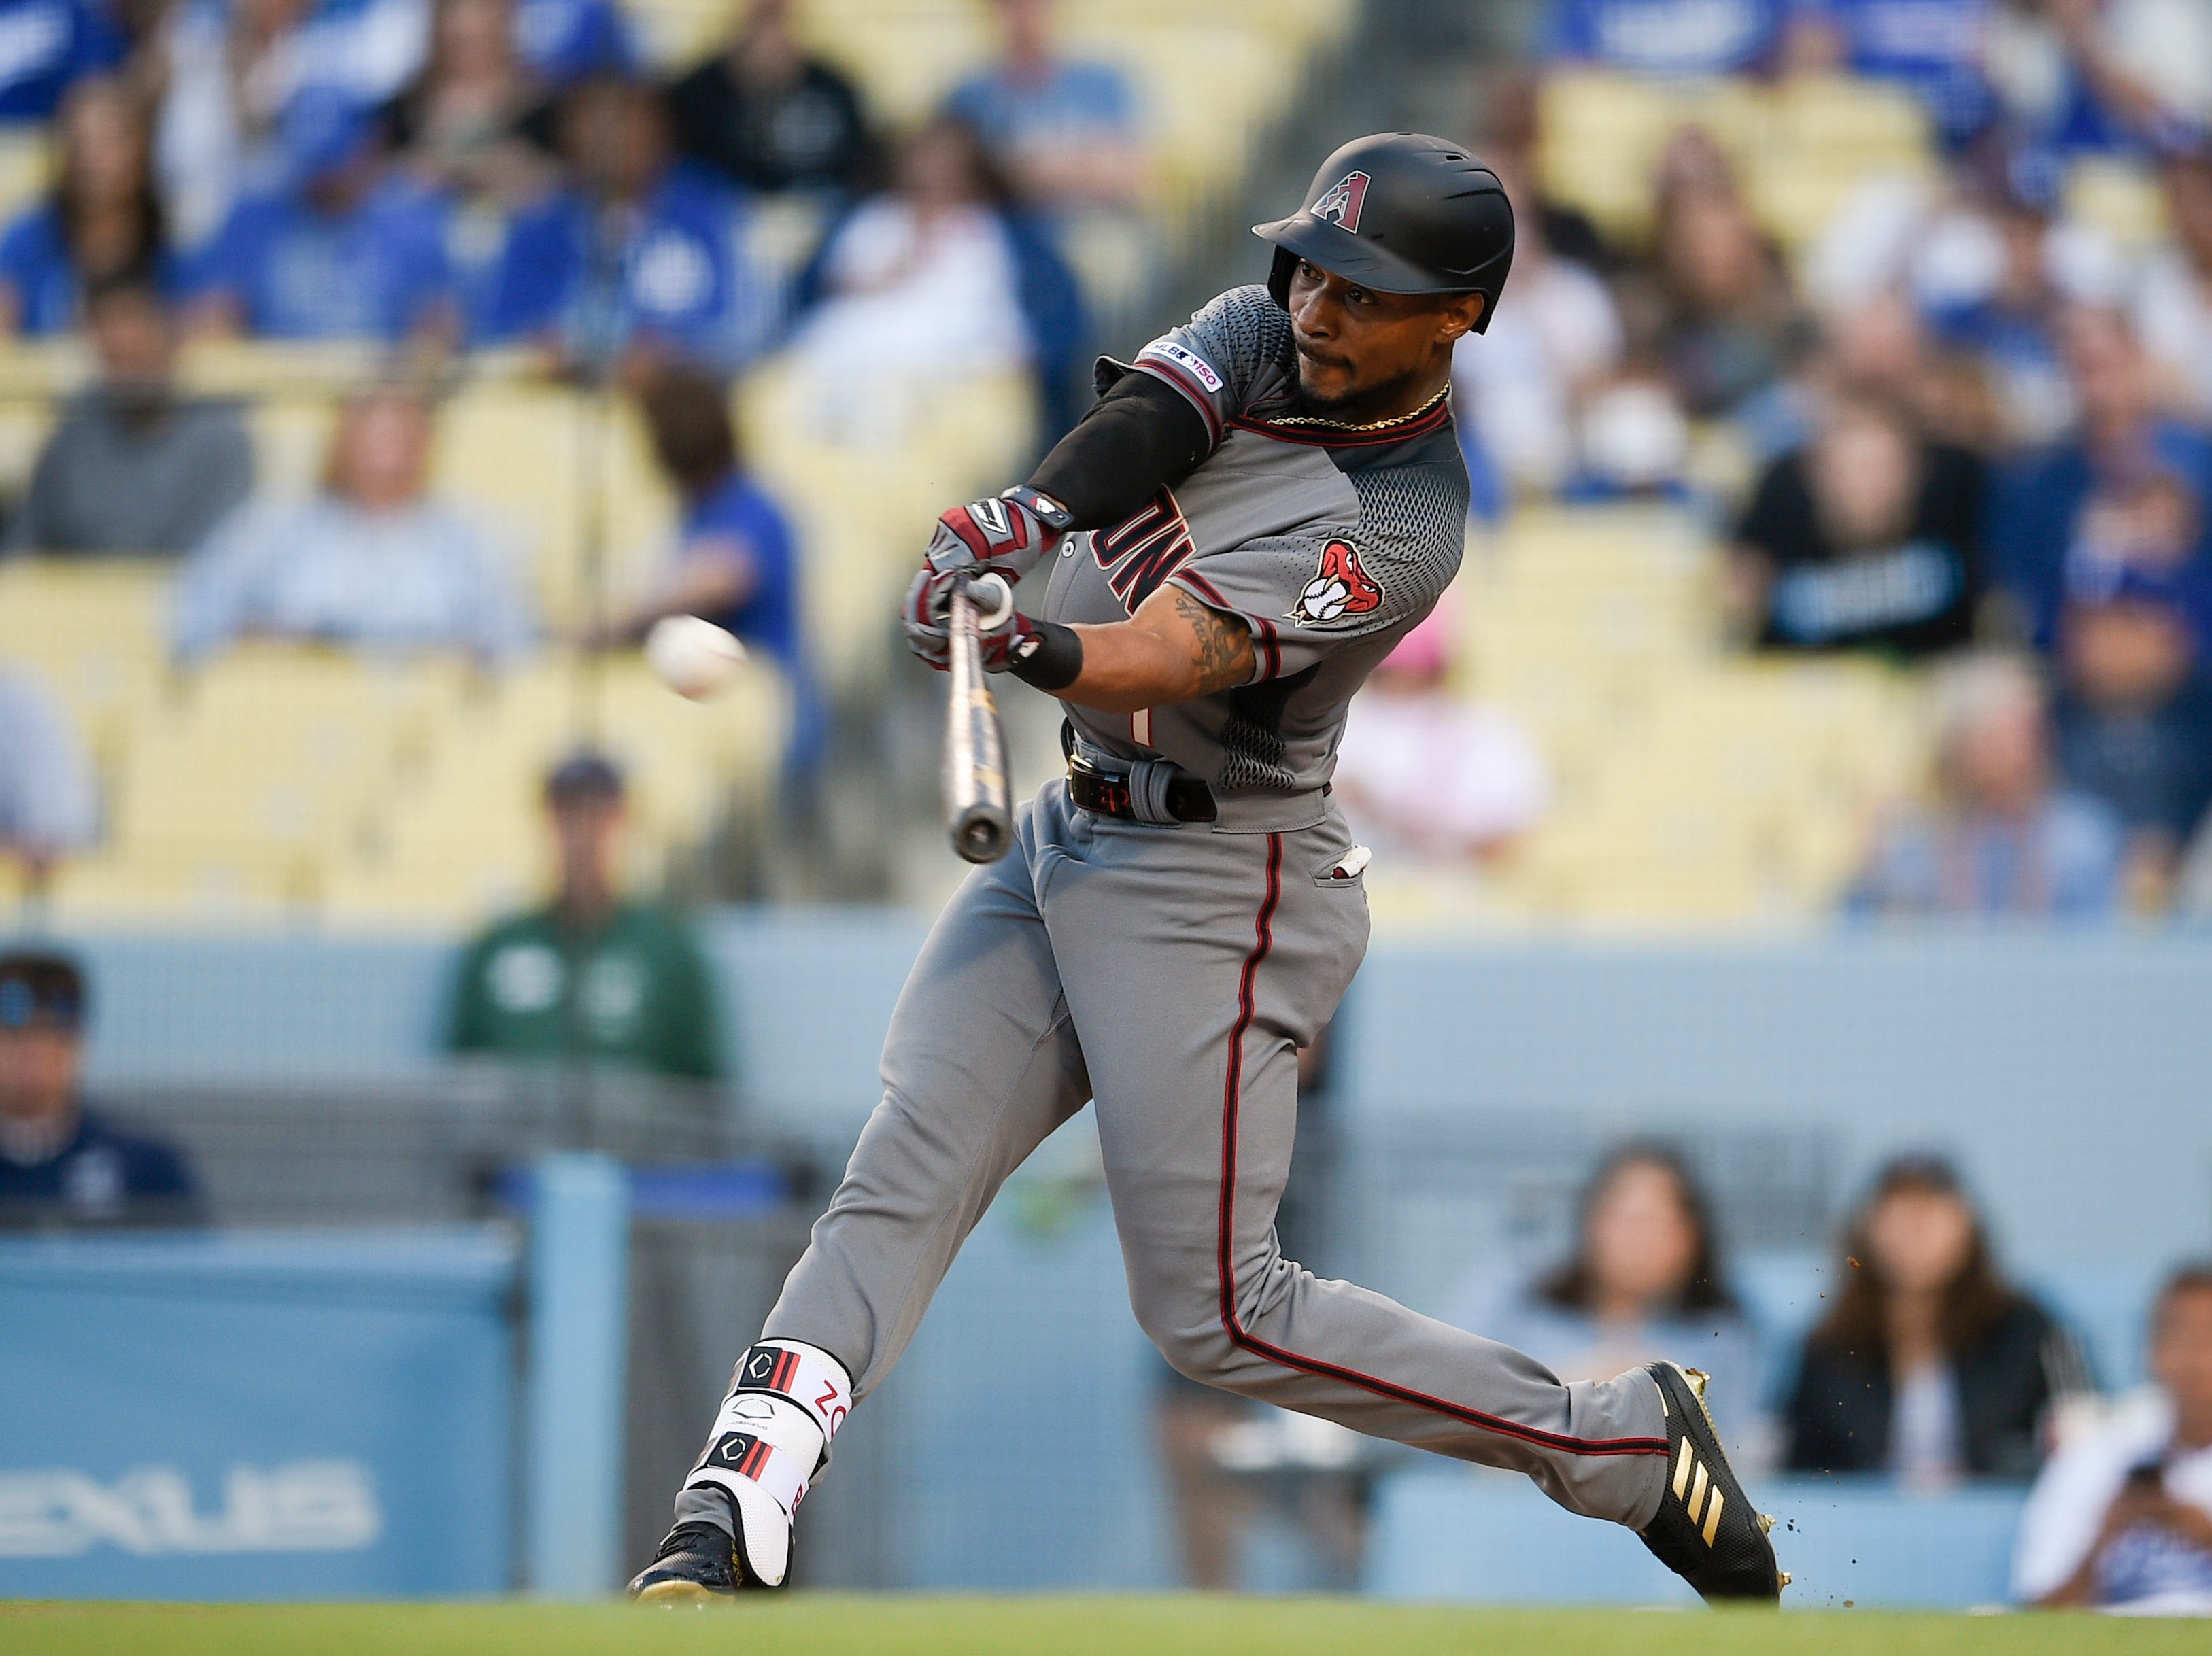 Mar 30, 2019; Los Angeles, CA, USA; Arizona Diamondbacks center fielder Jarrod Dyson (1) hits a solo home run during the first inning against the Los Angeles Dodgers at Dodger Stadium. Mandatory Credit: Kelvin Kuo-USA TODAY Sports